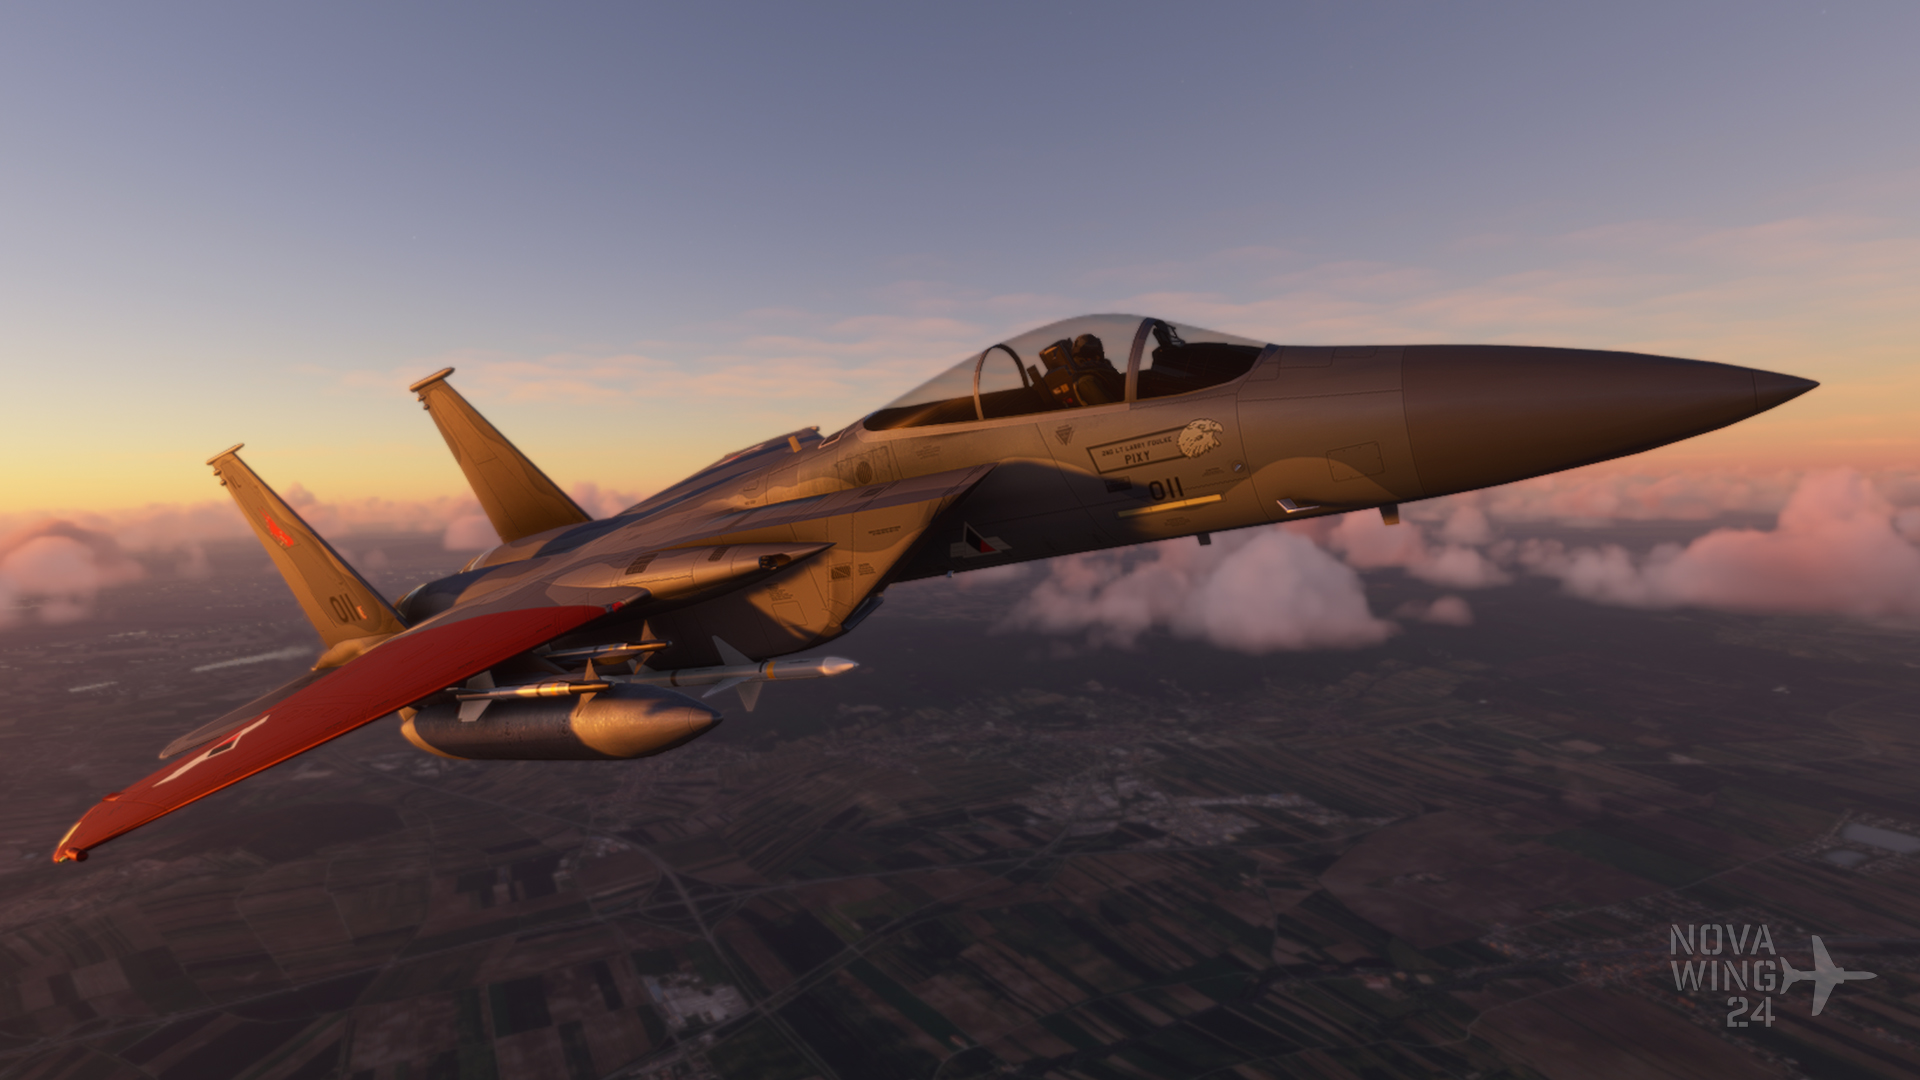 DC Designs F-15C in the markings of Pixy from Ace Combat